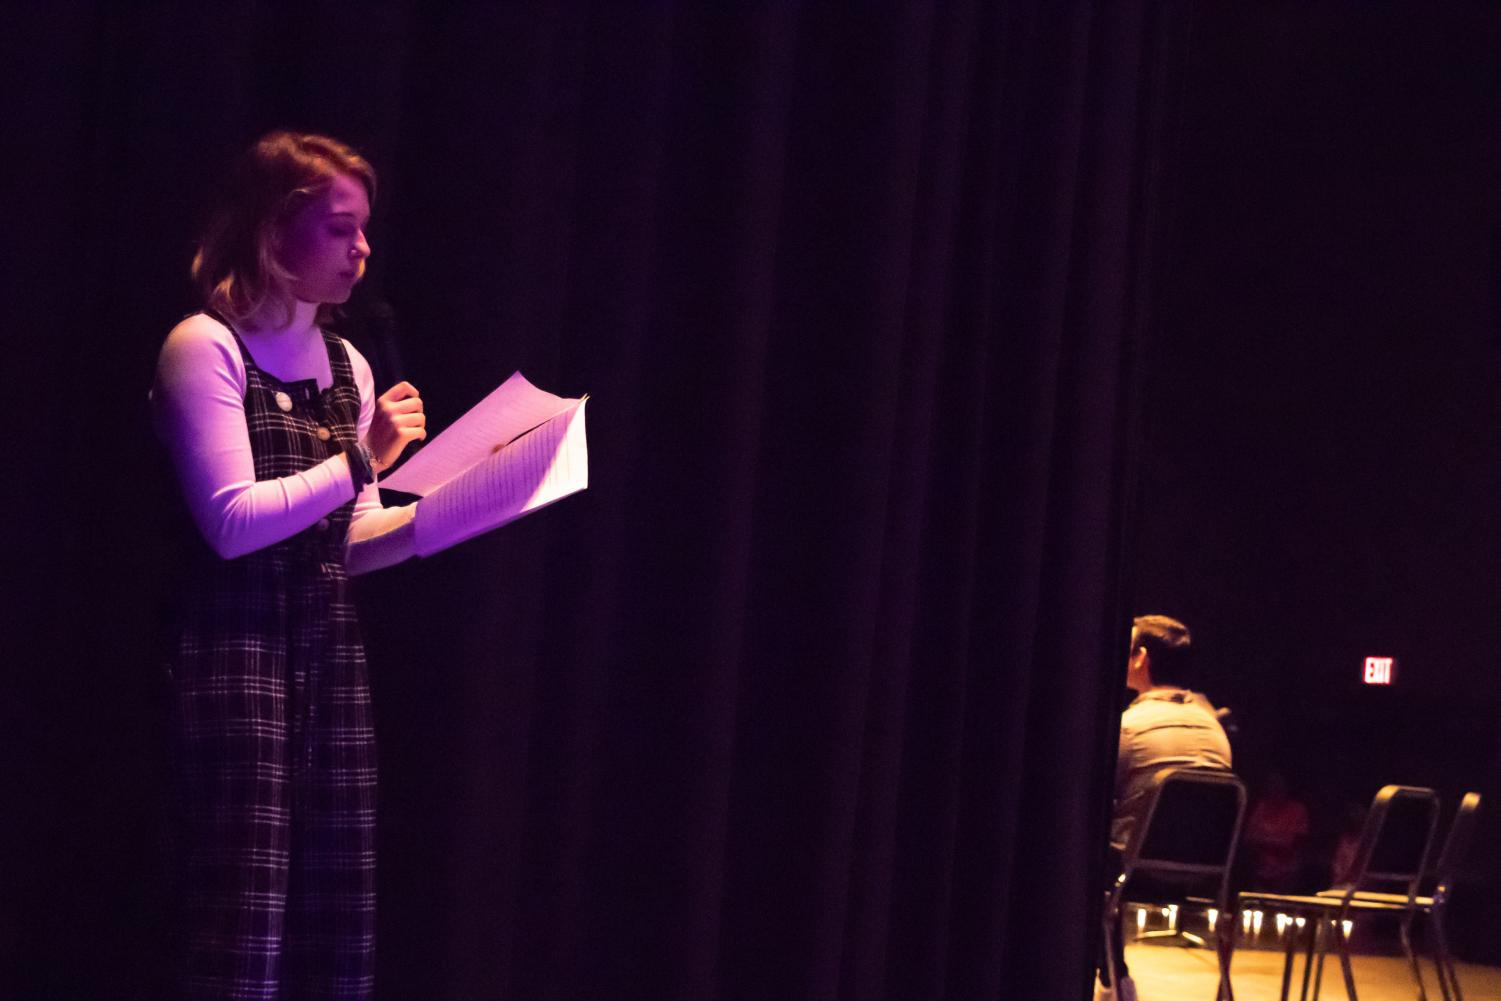 Chloe Skinner reads her story at HR Assembly on March 14. Skinner and a  specially selected group of students read stories about their struggles from behind the theater curtain. Afterwards, they all elected to go out on stage and reveal themselves to their peers.